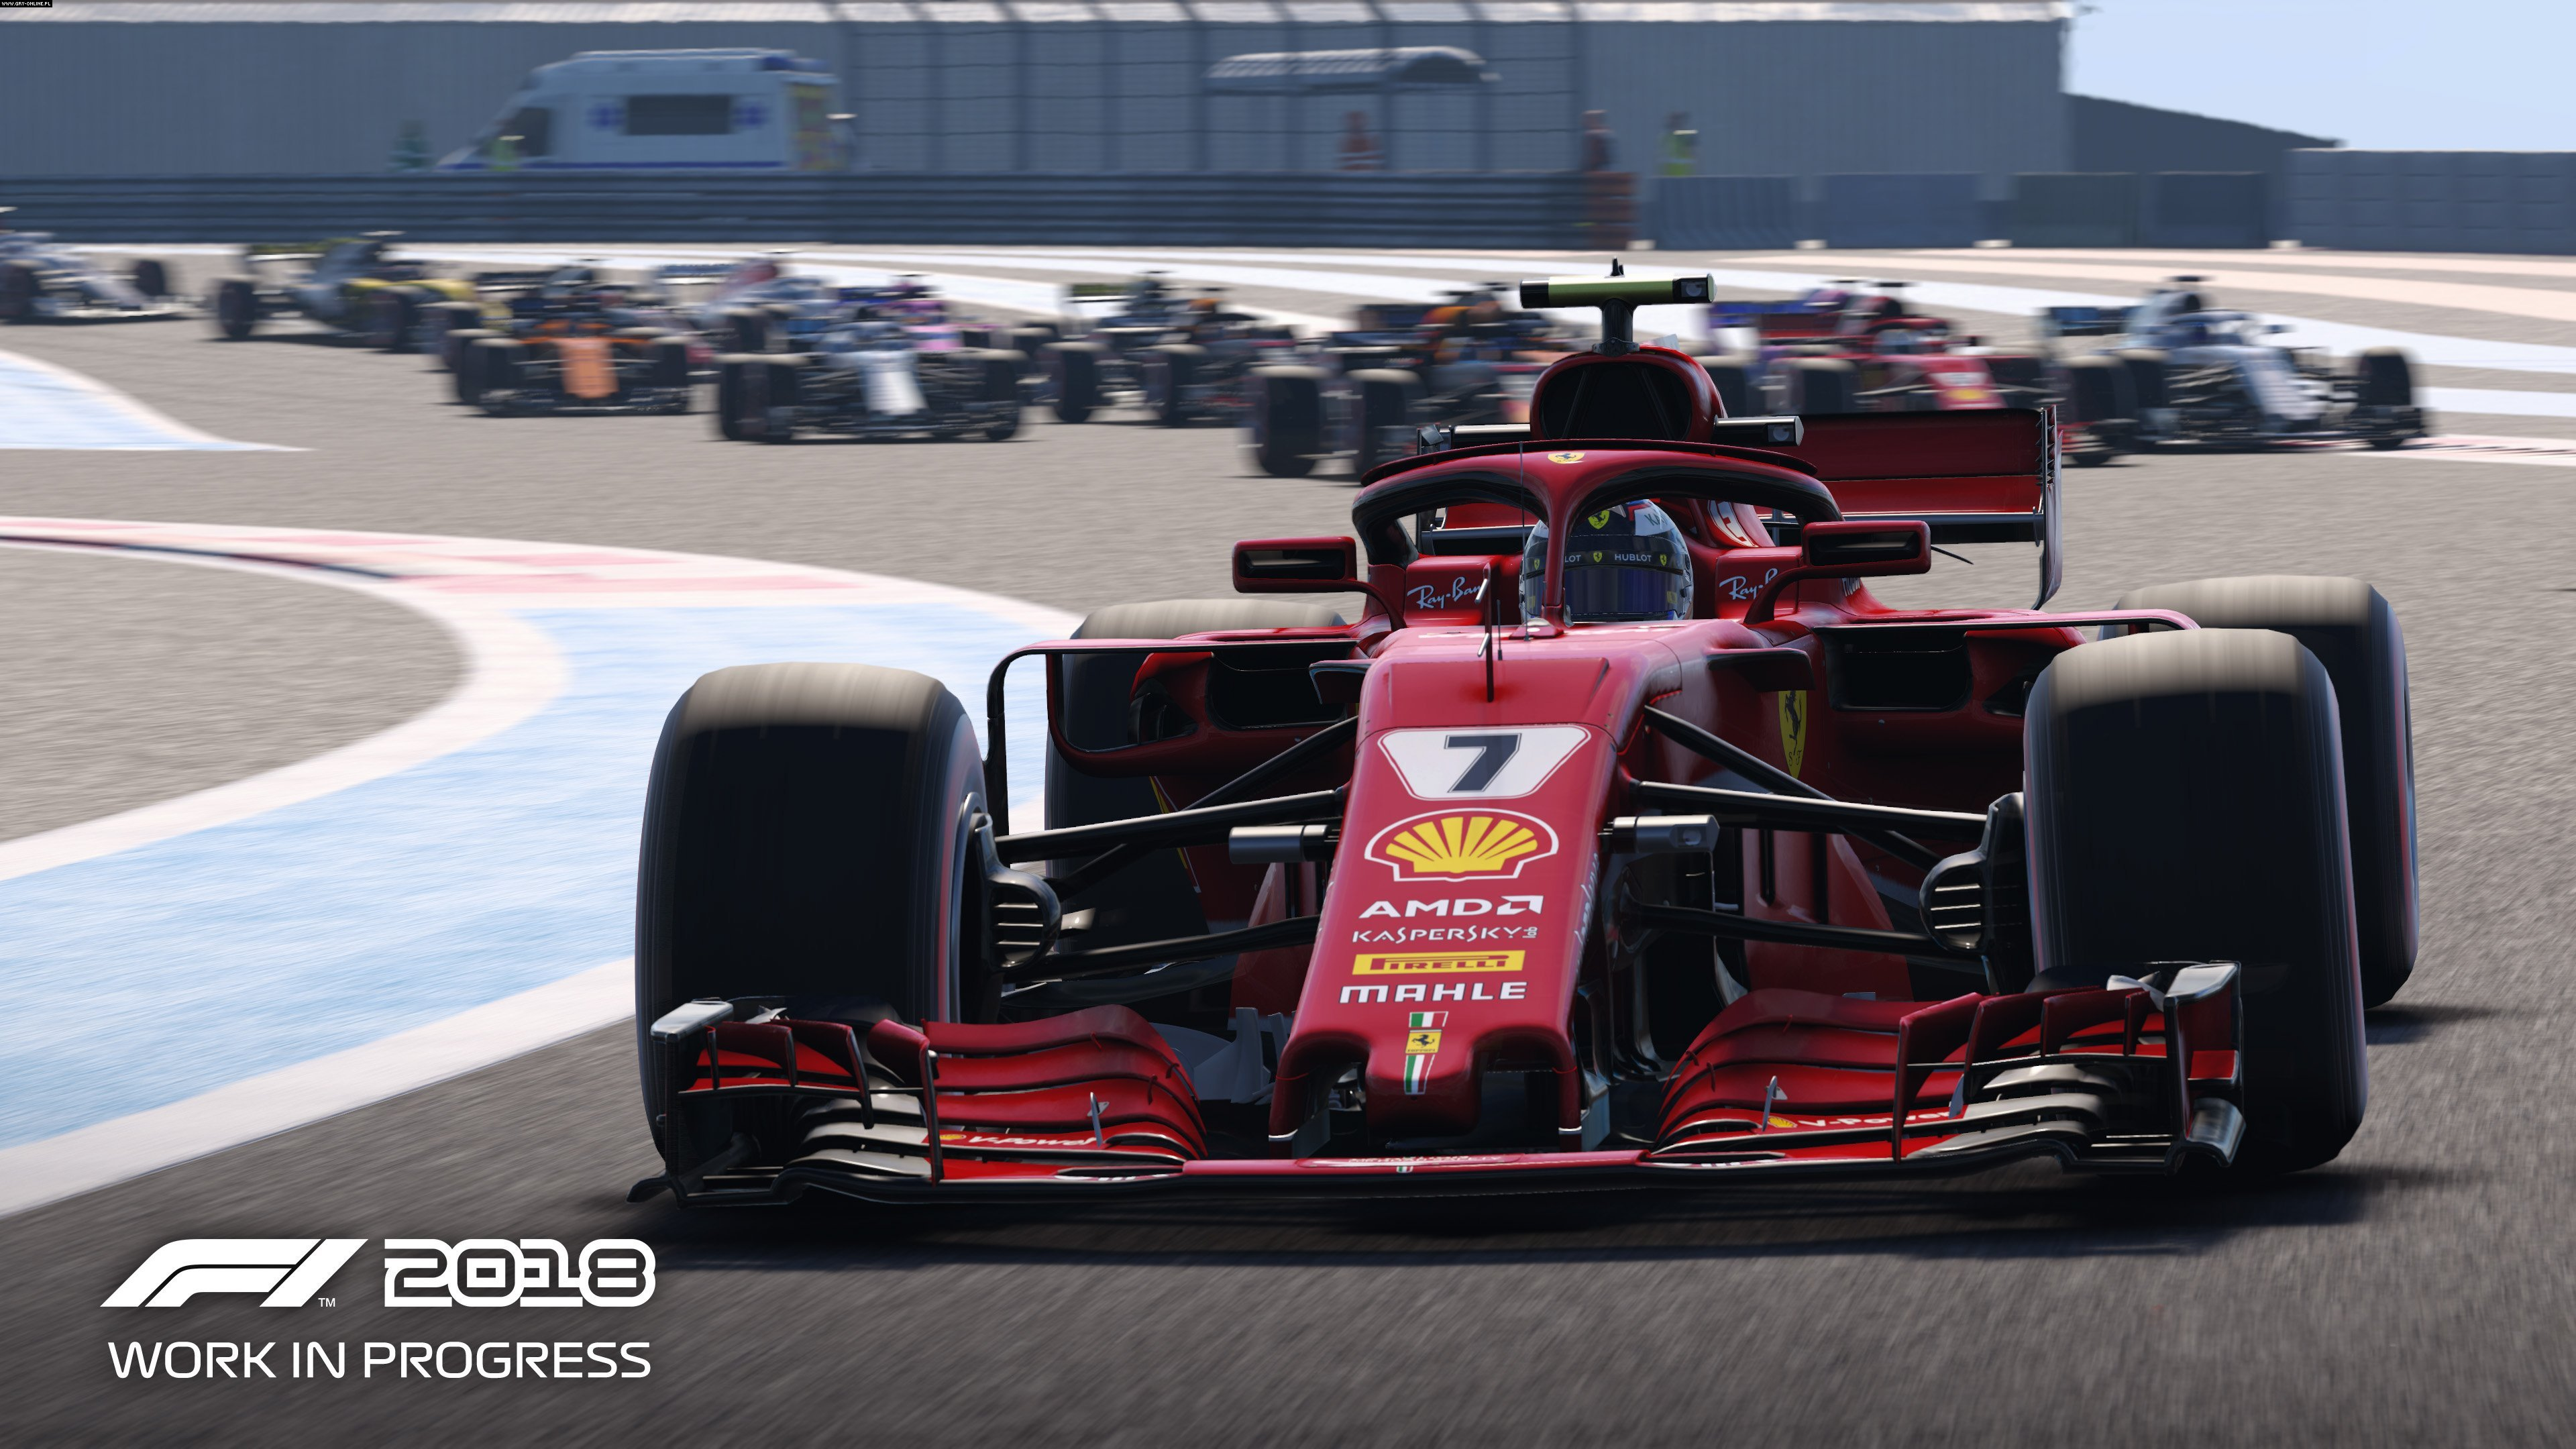 F1 2018 PC, PS4, XONE Games Image 33/43, Codemasters Software